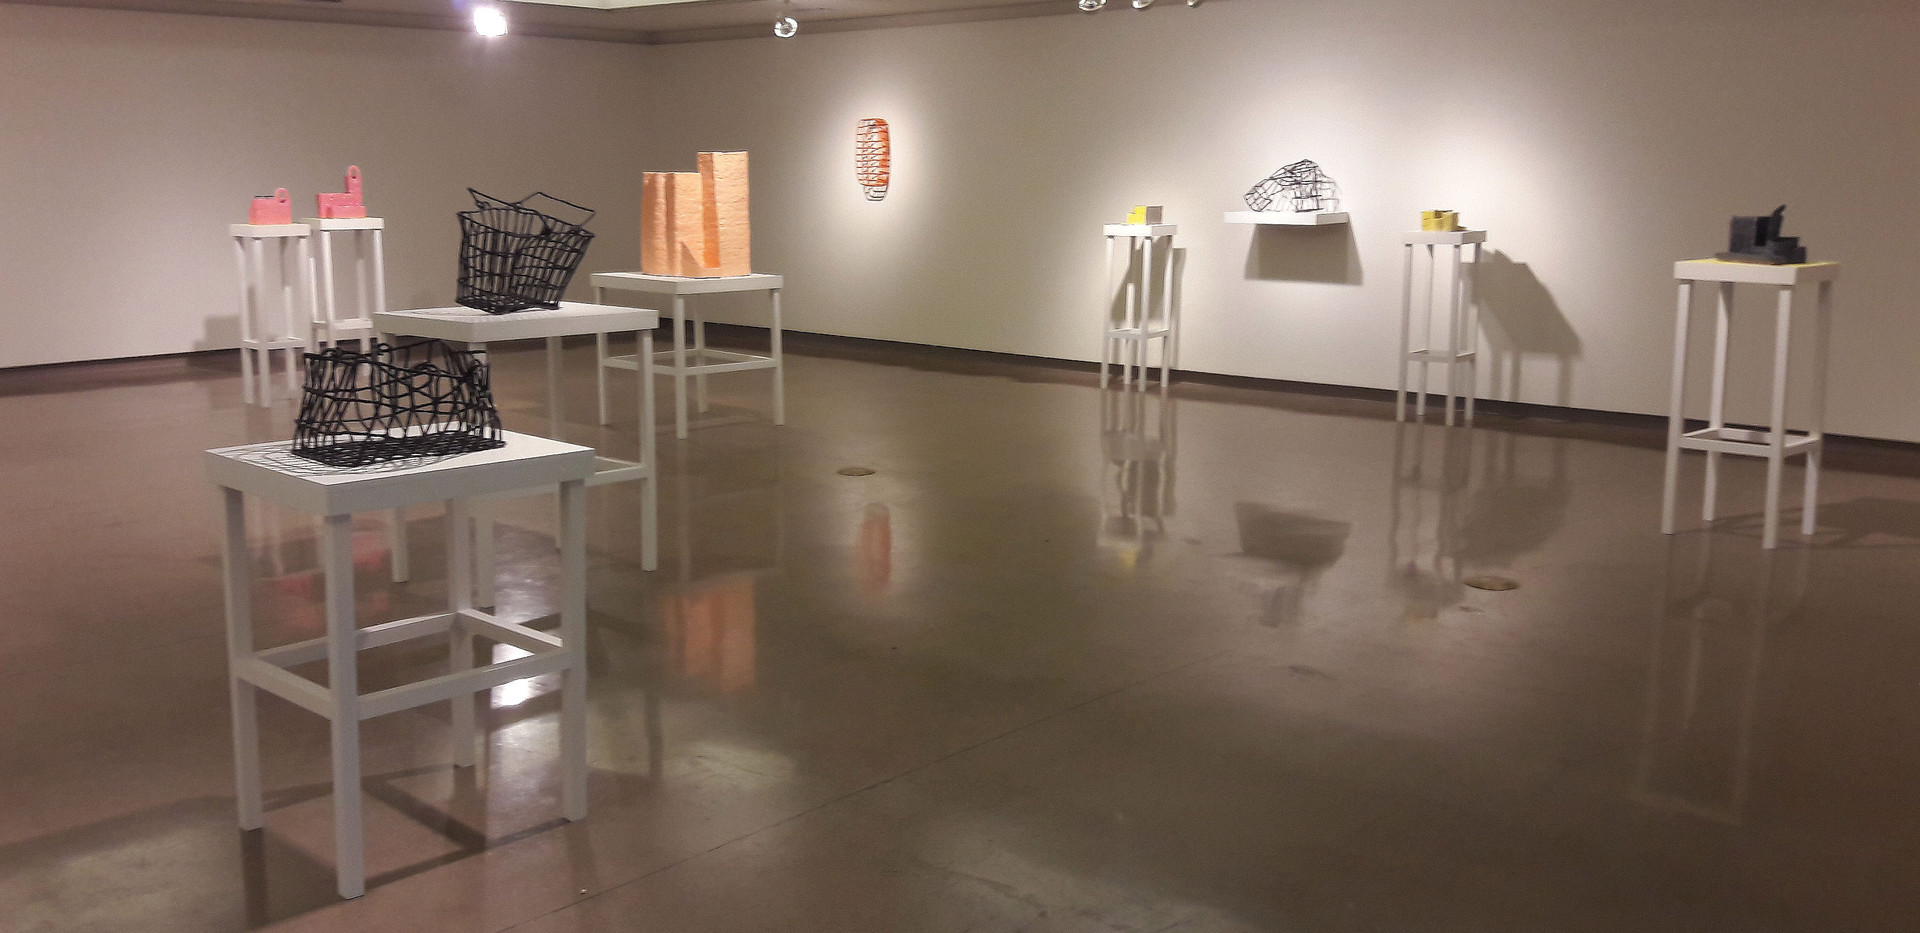 thesis show right side.jpg